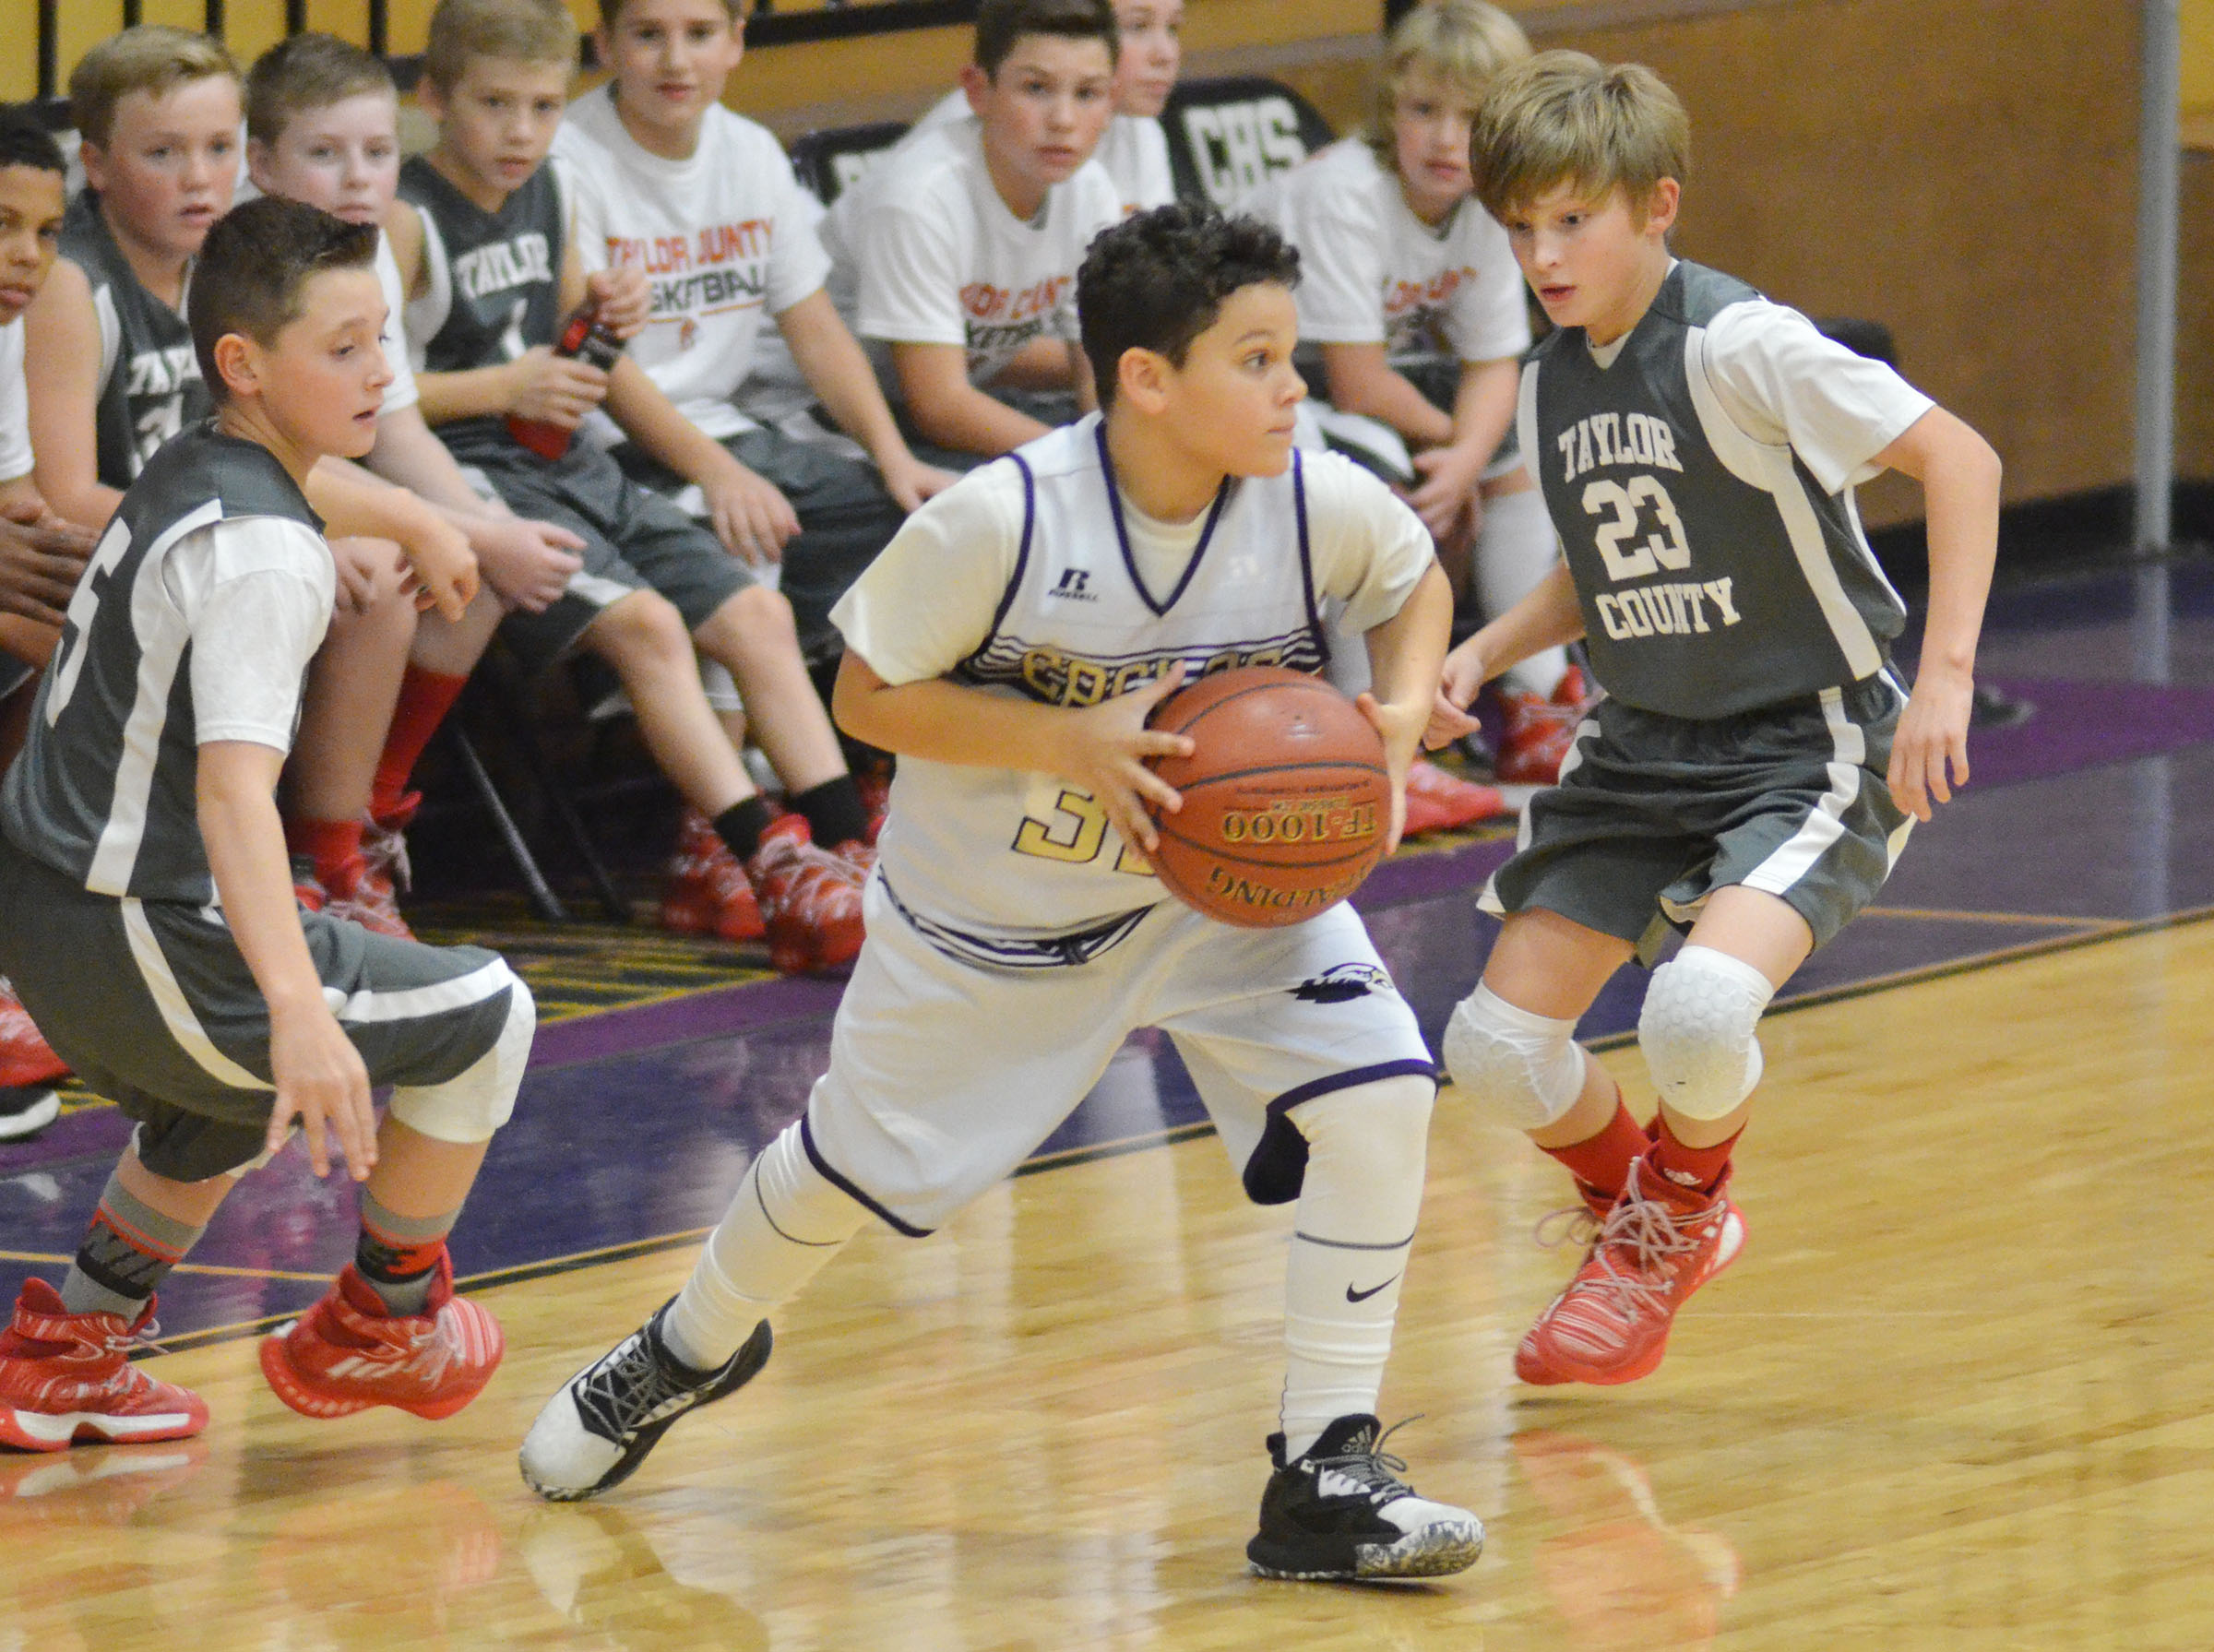 CMS sixth-grader Kaydon Taylor passes the ball.